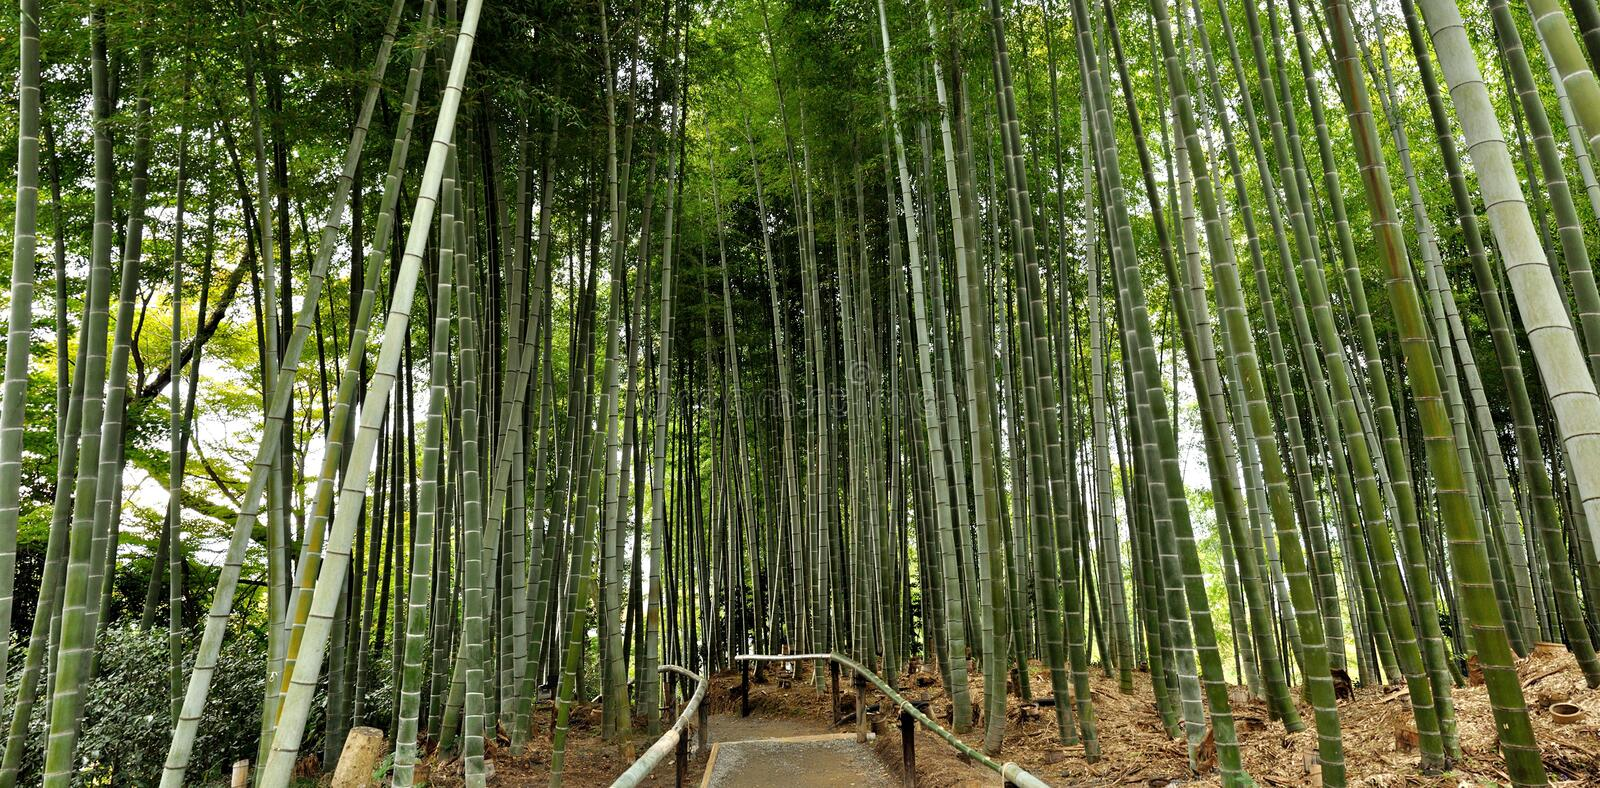 Japanese bamboo forest. Kyoto bamboo forest in a temple garden royalty free stock photo